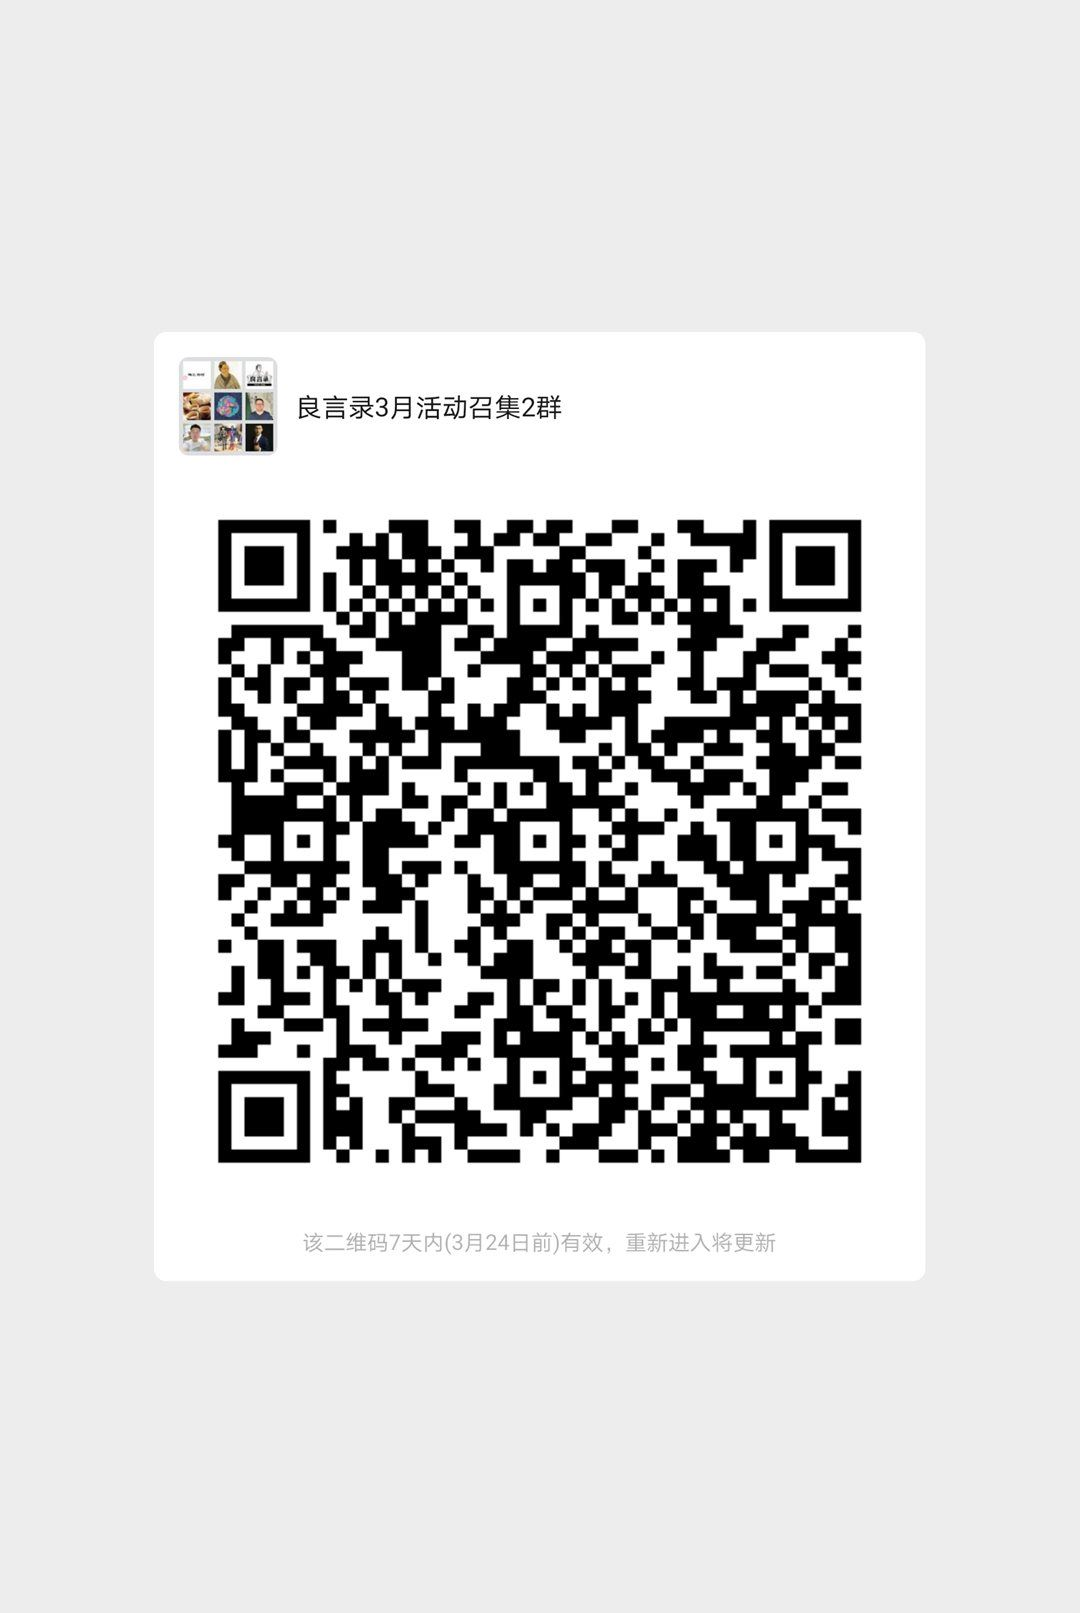 mmqrcode1615939728352.png